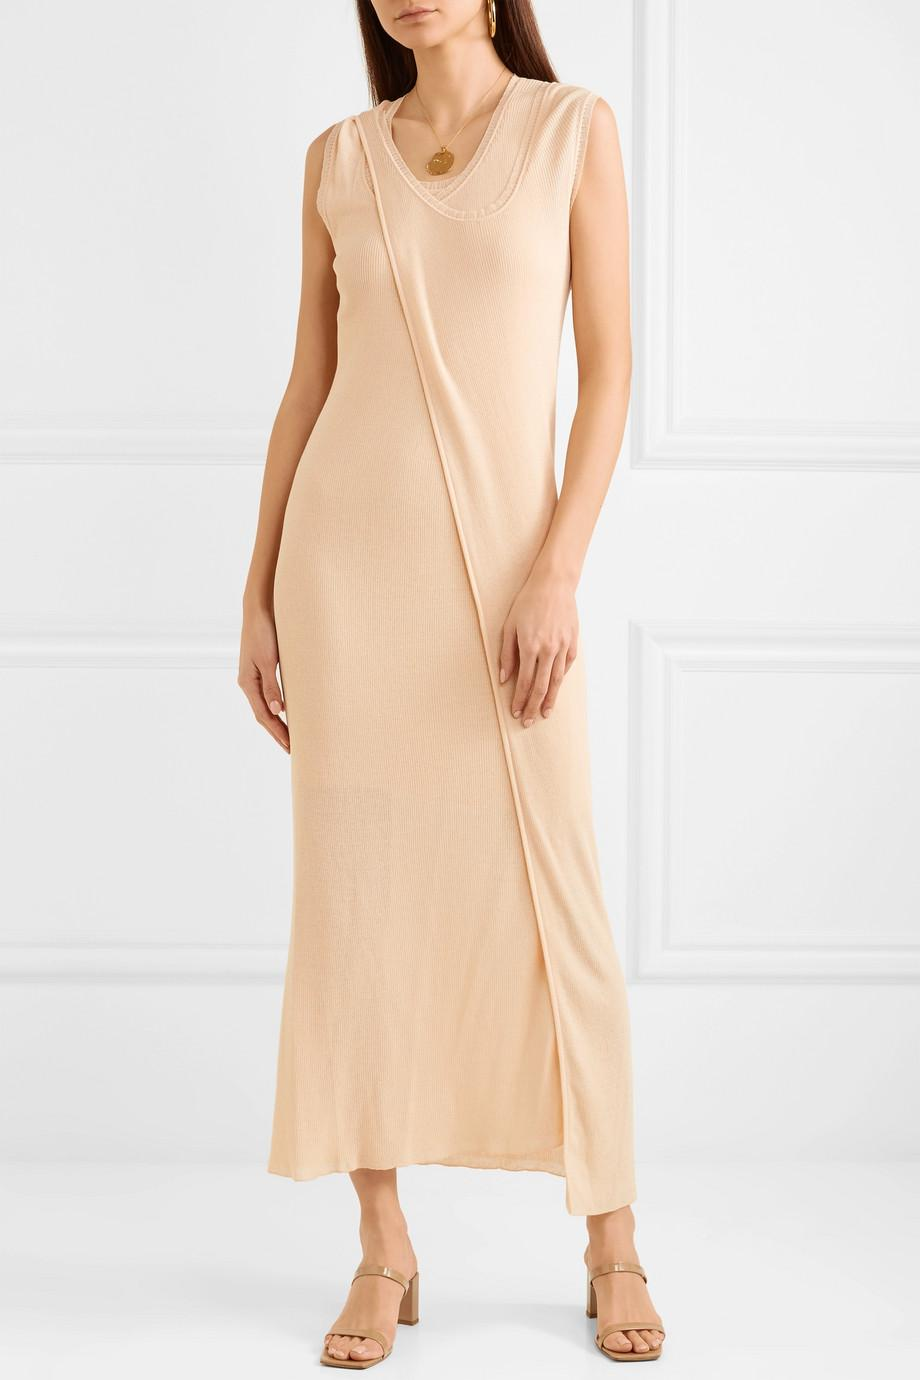 Layered Cotton-blend Midi Dress - Ivory Stella McCartney Get To Buy Cheap Online Footlocker Sale Online Cheap Sale Limited Edition Low Price Fee Shipping Cheap Price 5TUystq0q7